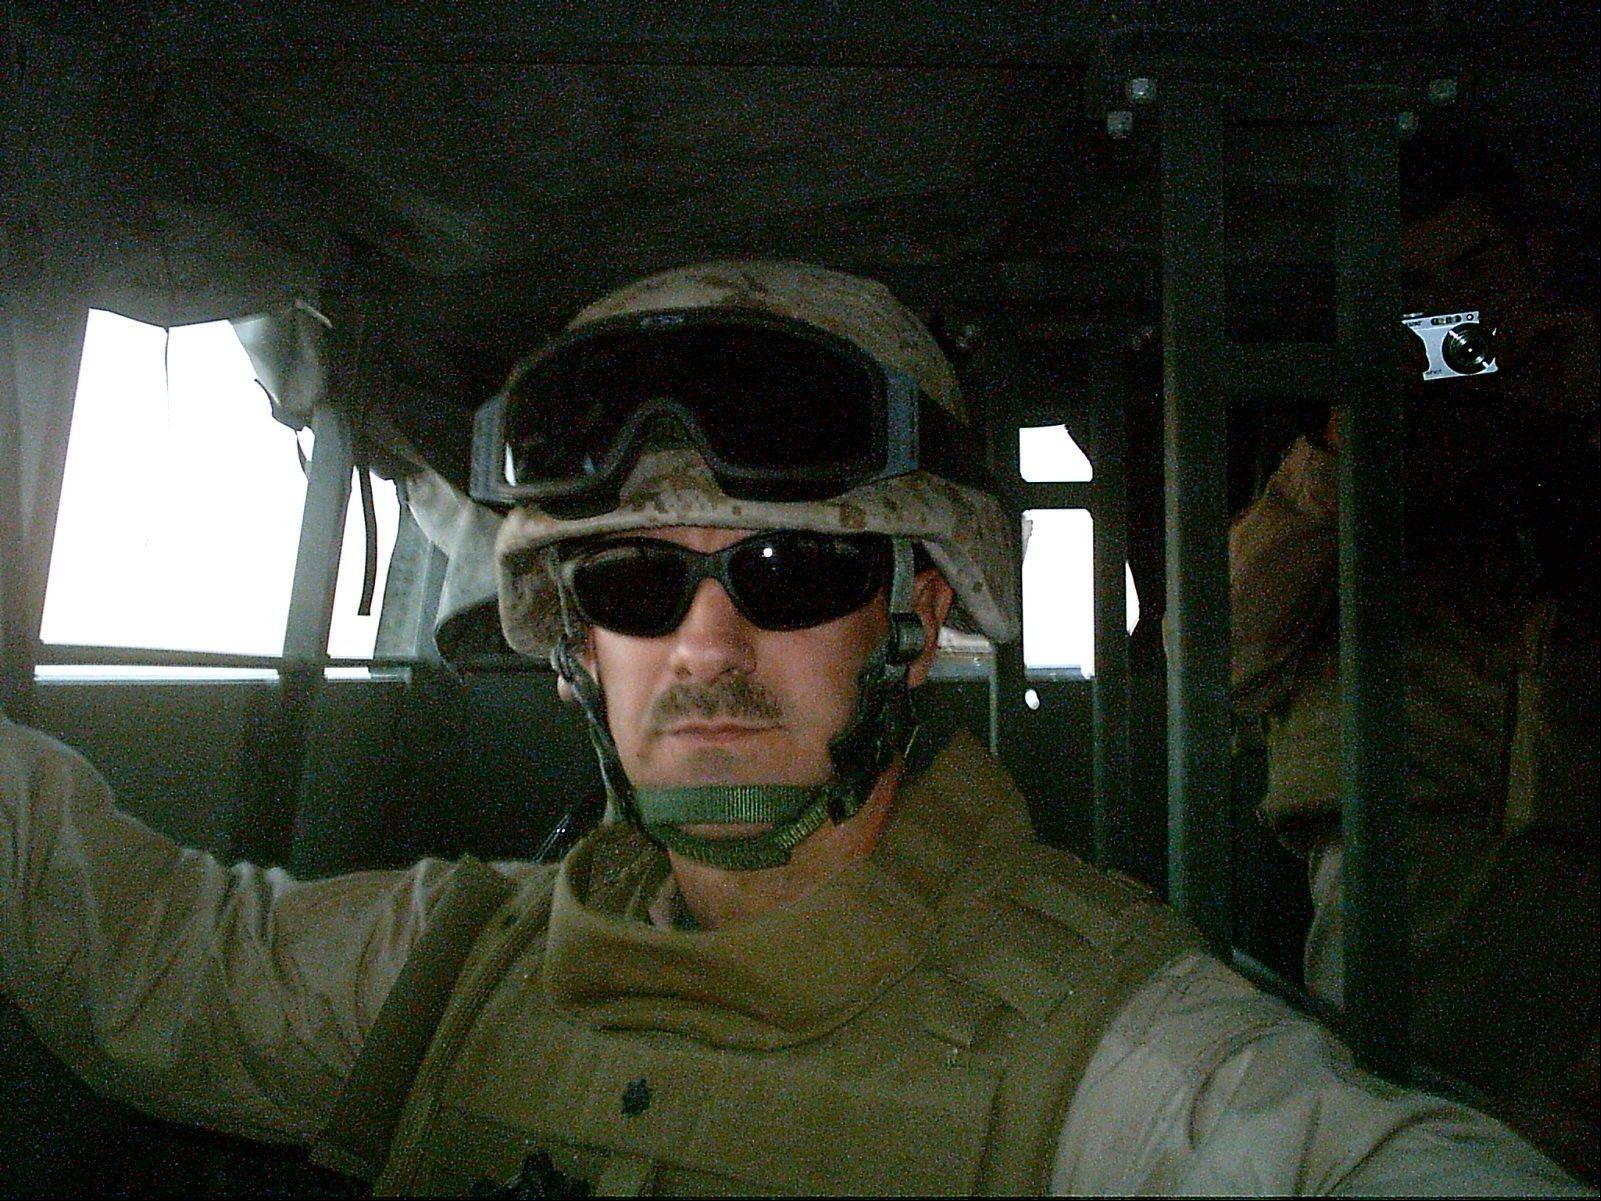 COURTESY OF ADVOCATE GOOD SAMARITAN HOSPITALDr. James Cole Jr. travels in a 7-ton truck on a convoy somewhere in Al Anbar Province, Iraq in 2007.